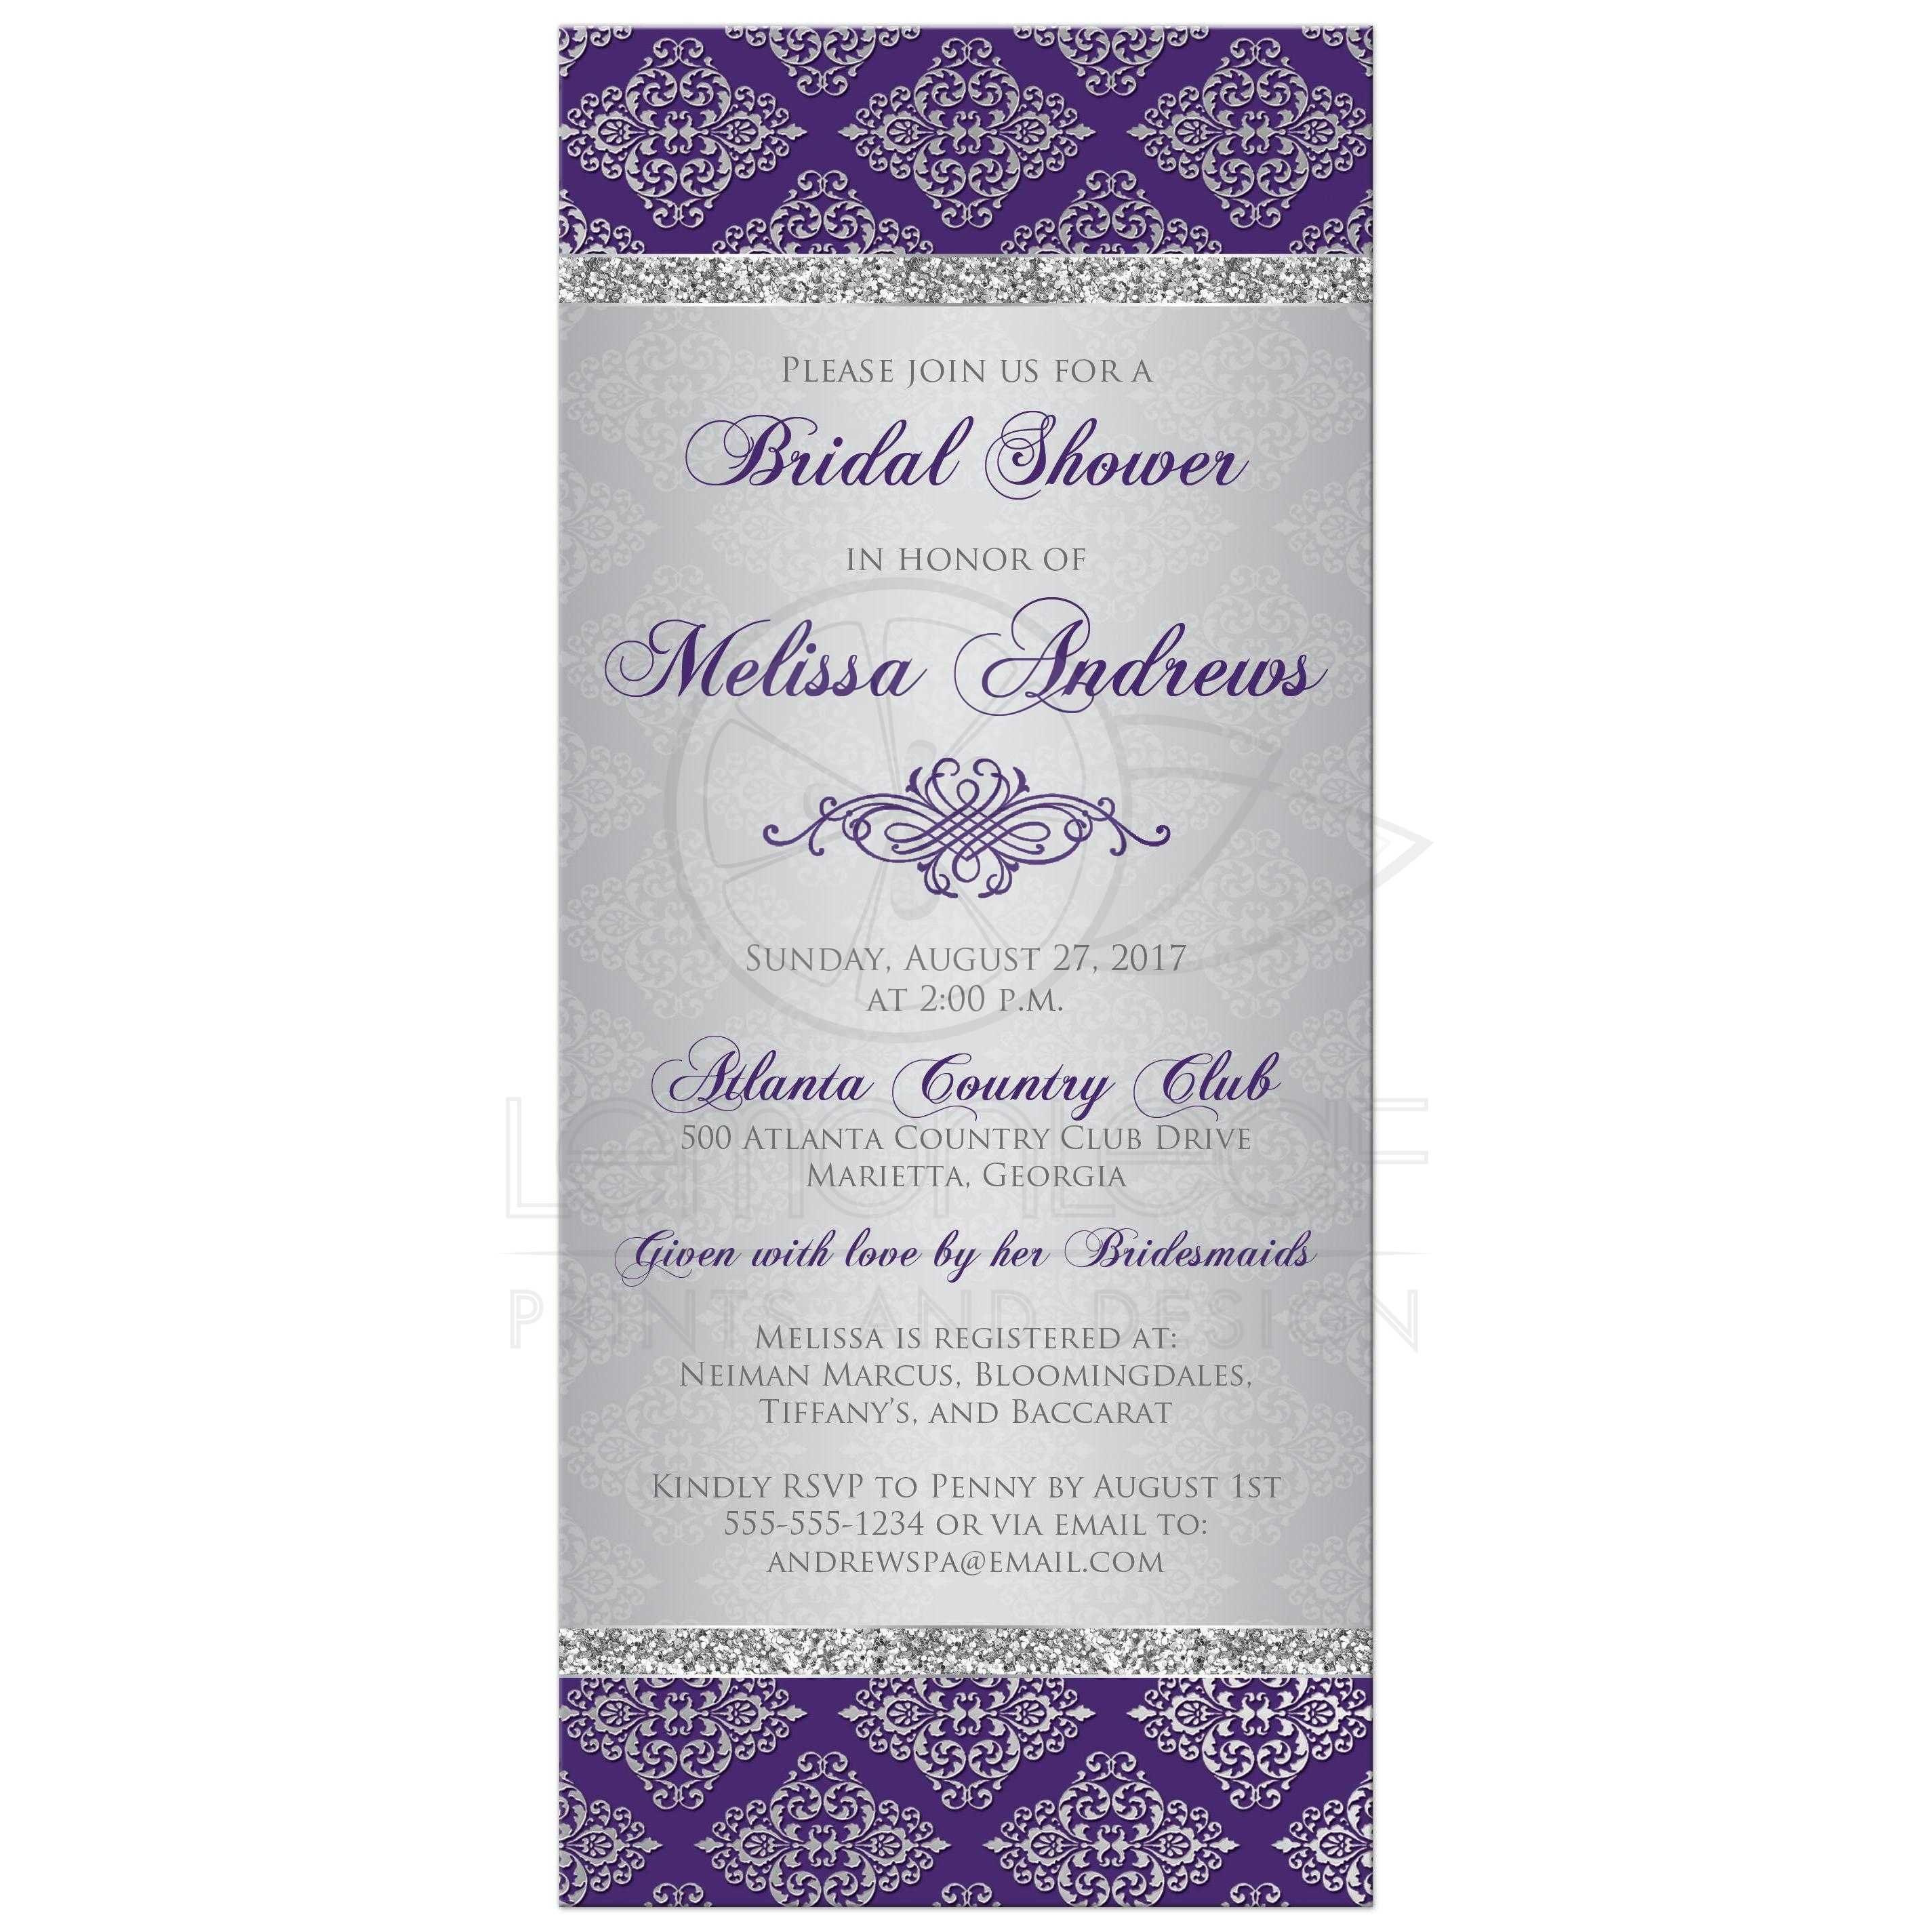 purple and silver grey damask bridal shower invite with silver glitter and an ornate scroll